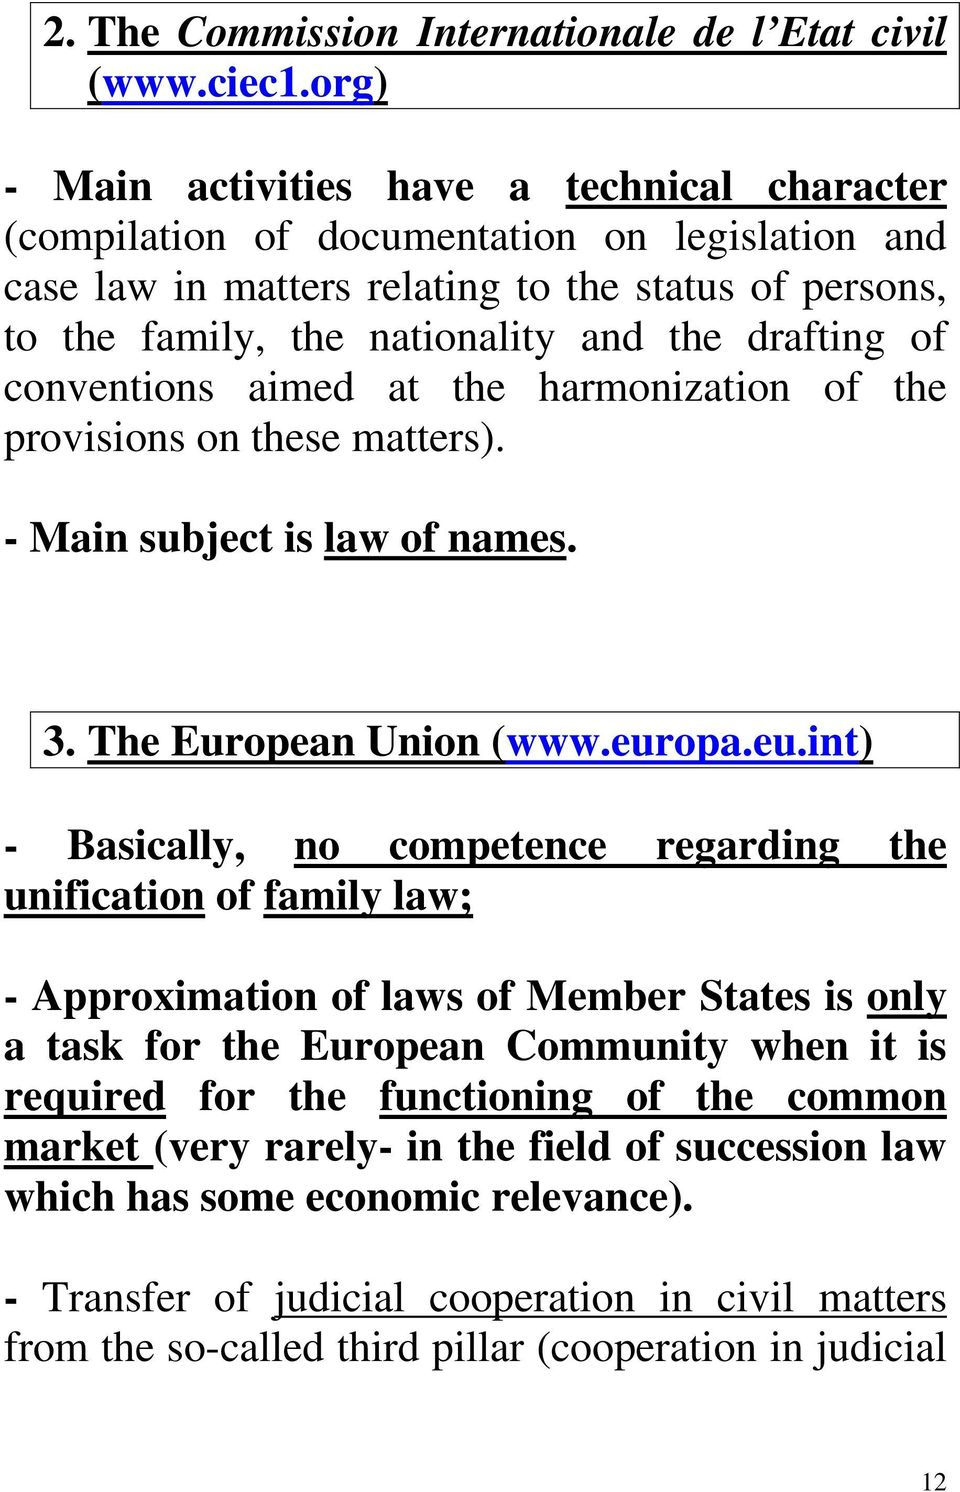 drafting of conventions aimed at the harmonization of the provisions on these matters). - Main subject is law of names. 3. The European Union (www.eur